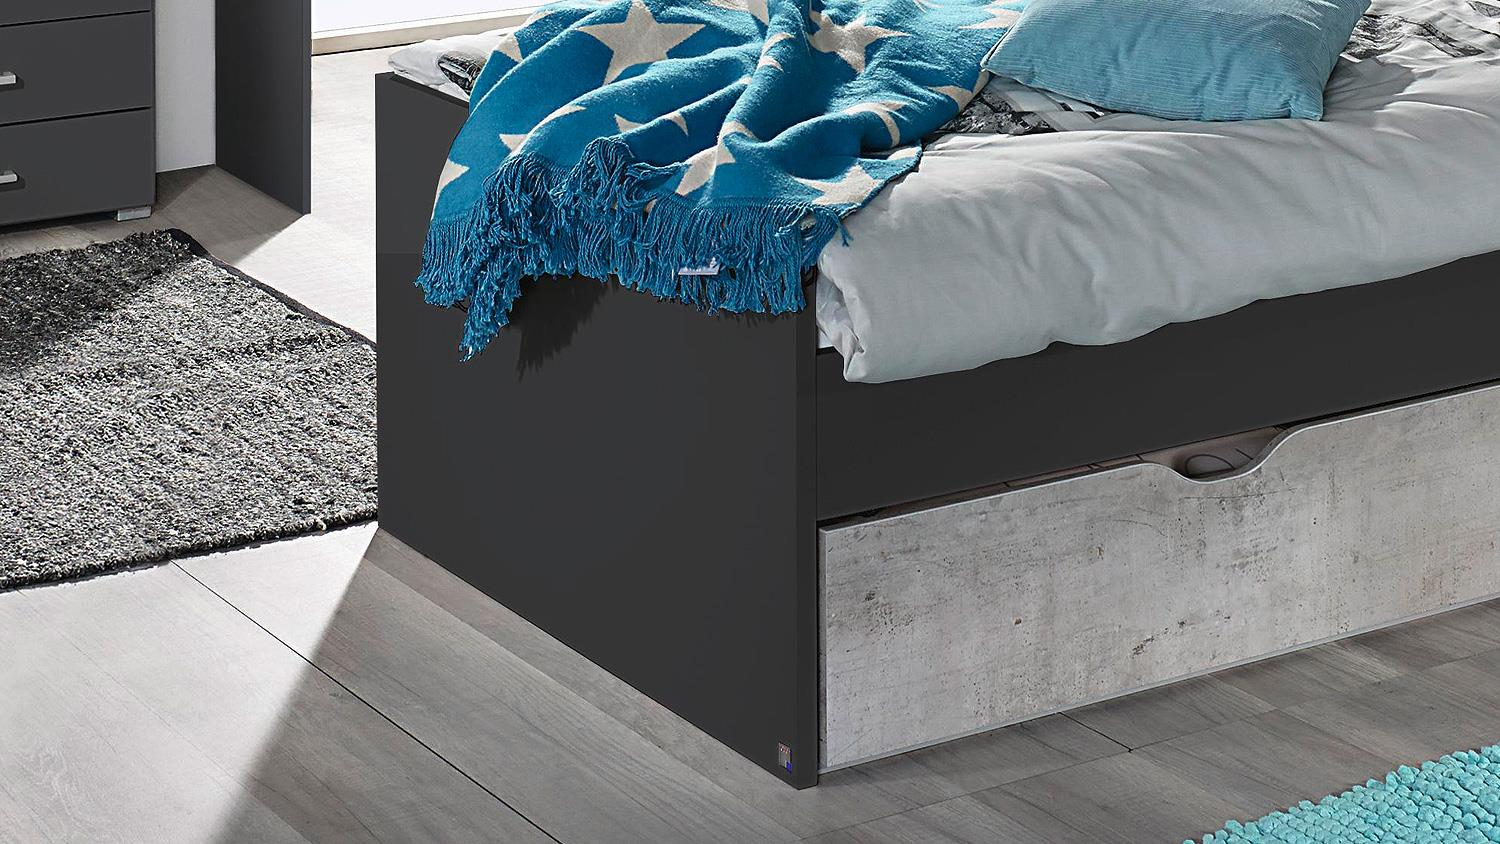 bett mailo umbauliege liege f r jugendzimmer in grau metallic 90x200. Black Bedroom Furniture Sets. Home Design Ideas